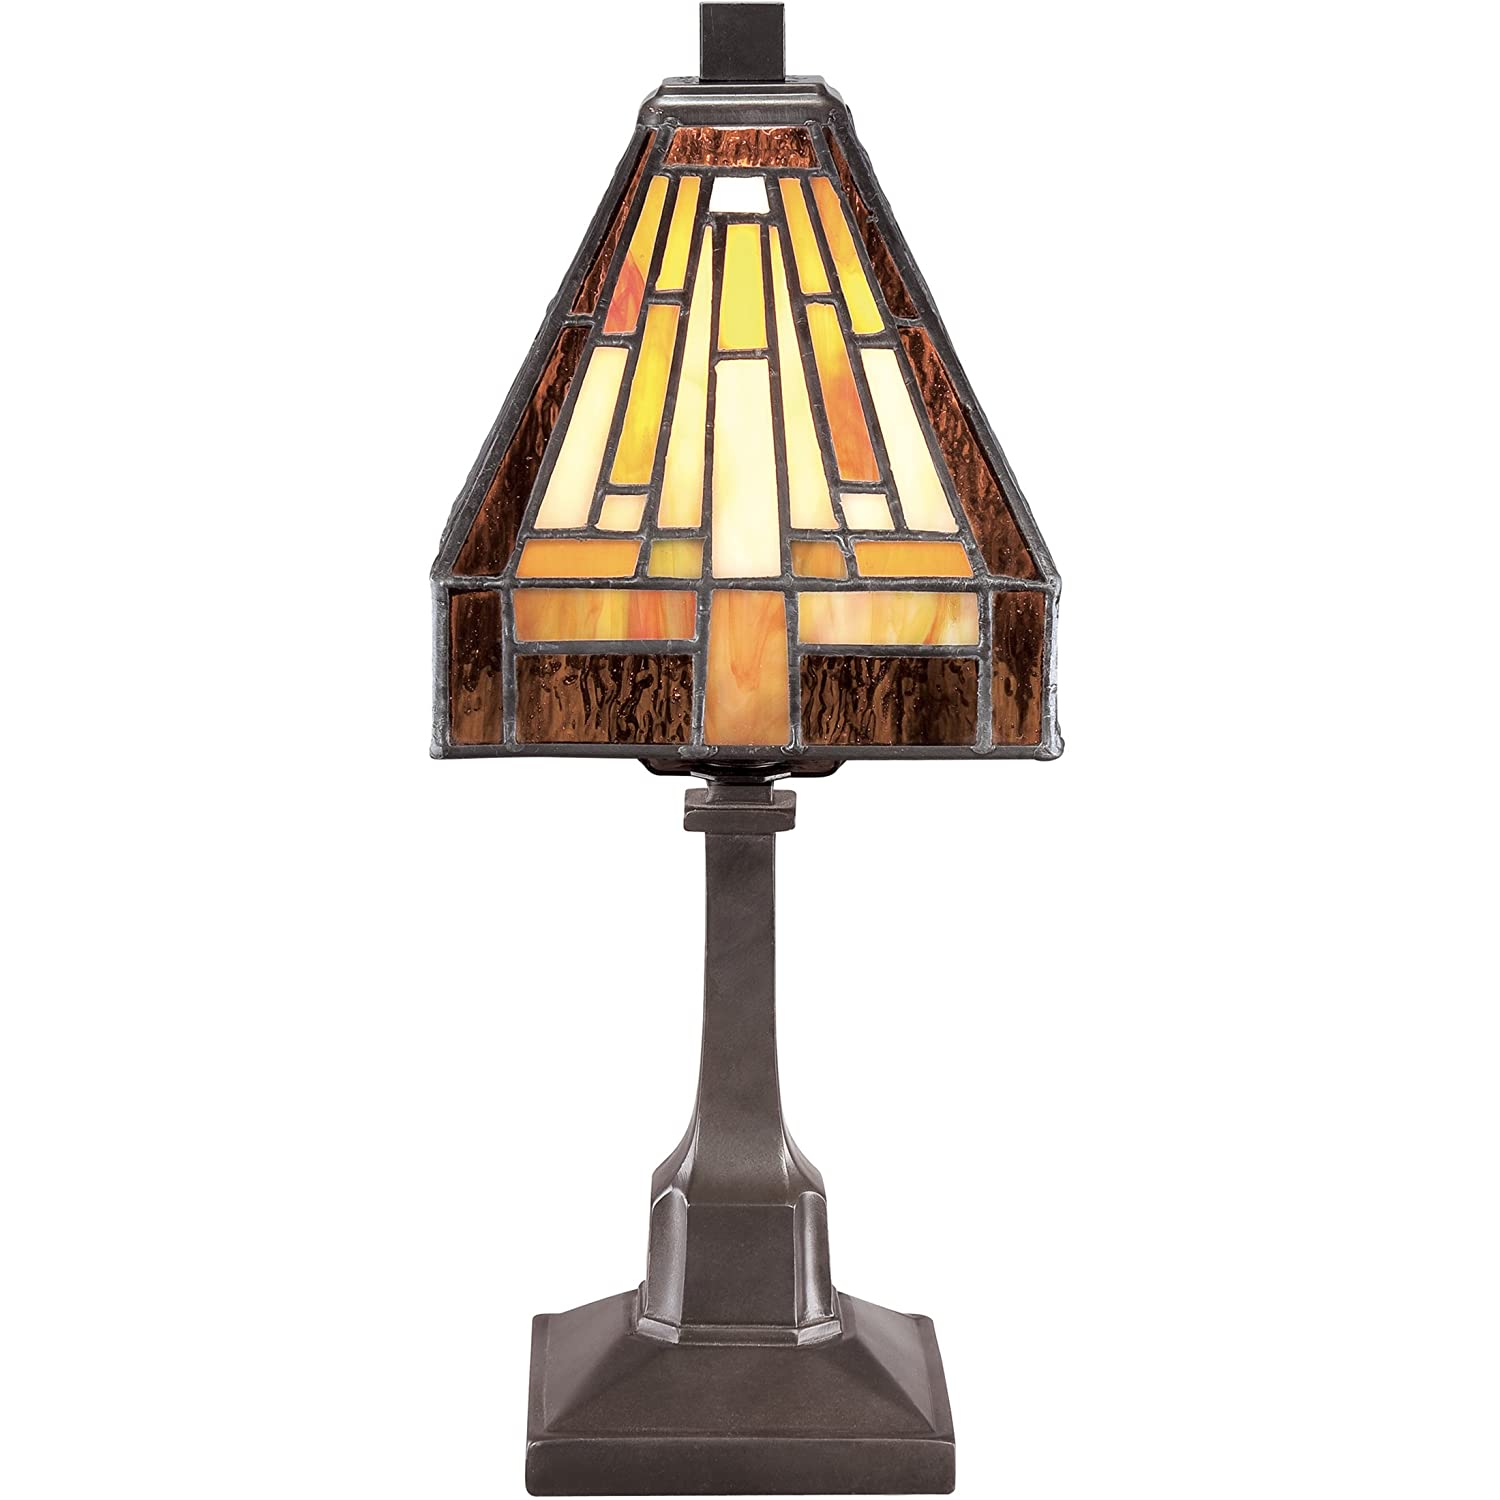 Quoizel tf1018tvb stephan mini 1 light tiffany table lamp quoizel tf1018tvb stephan mini 1 light tiffany table lamp tiffany style table lamps amazon geotapseo Choice Image